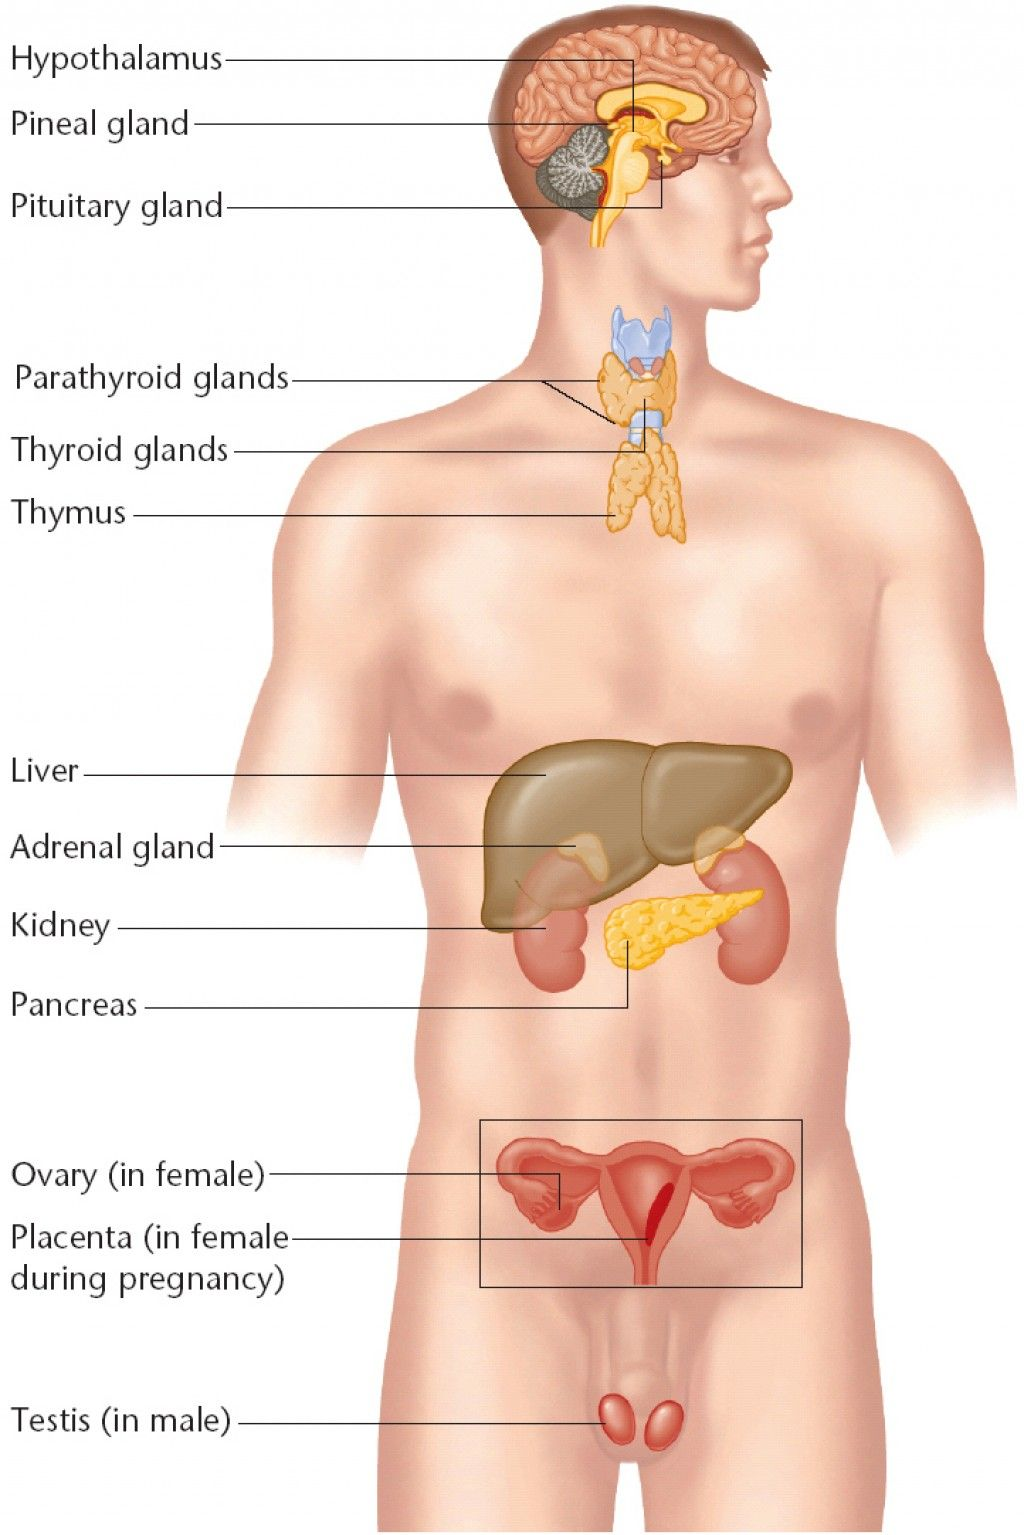 Considerations in endocrinology and the endocrine system general considerations in endocrinology and the endocrine system ccuart Image collections